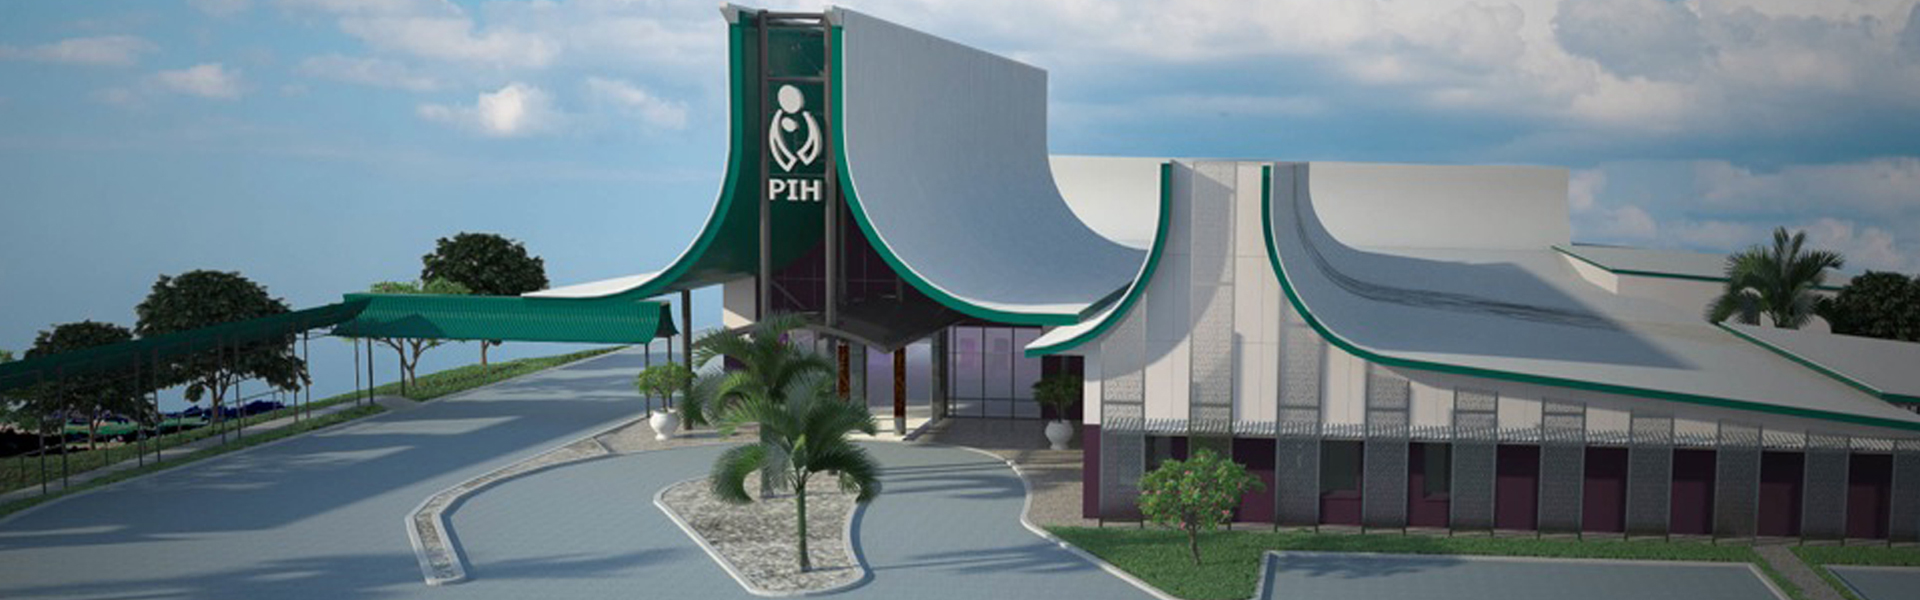 hospitals in papua new guinea